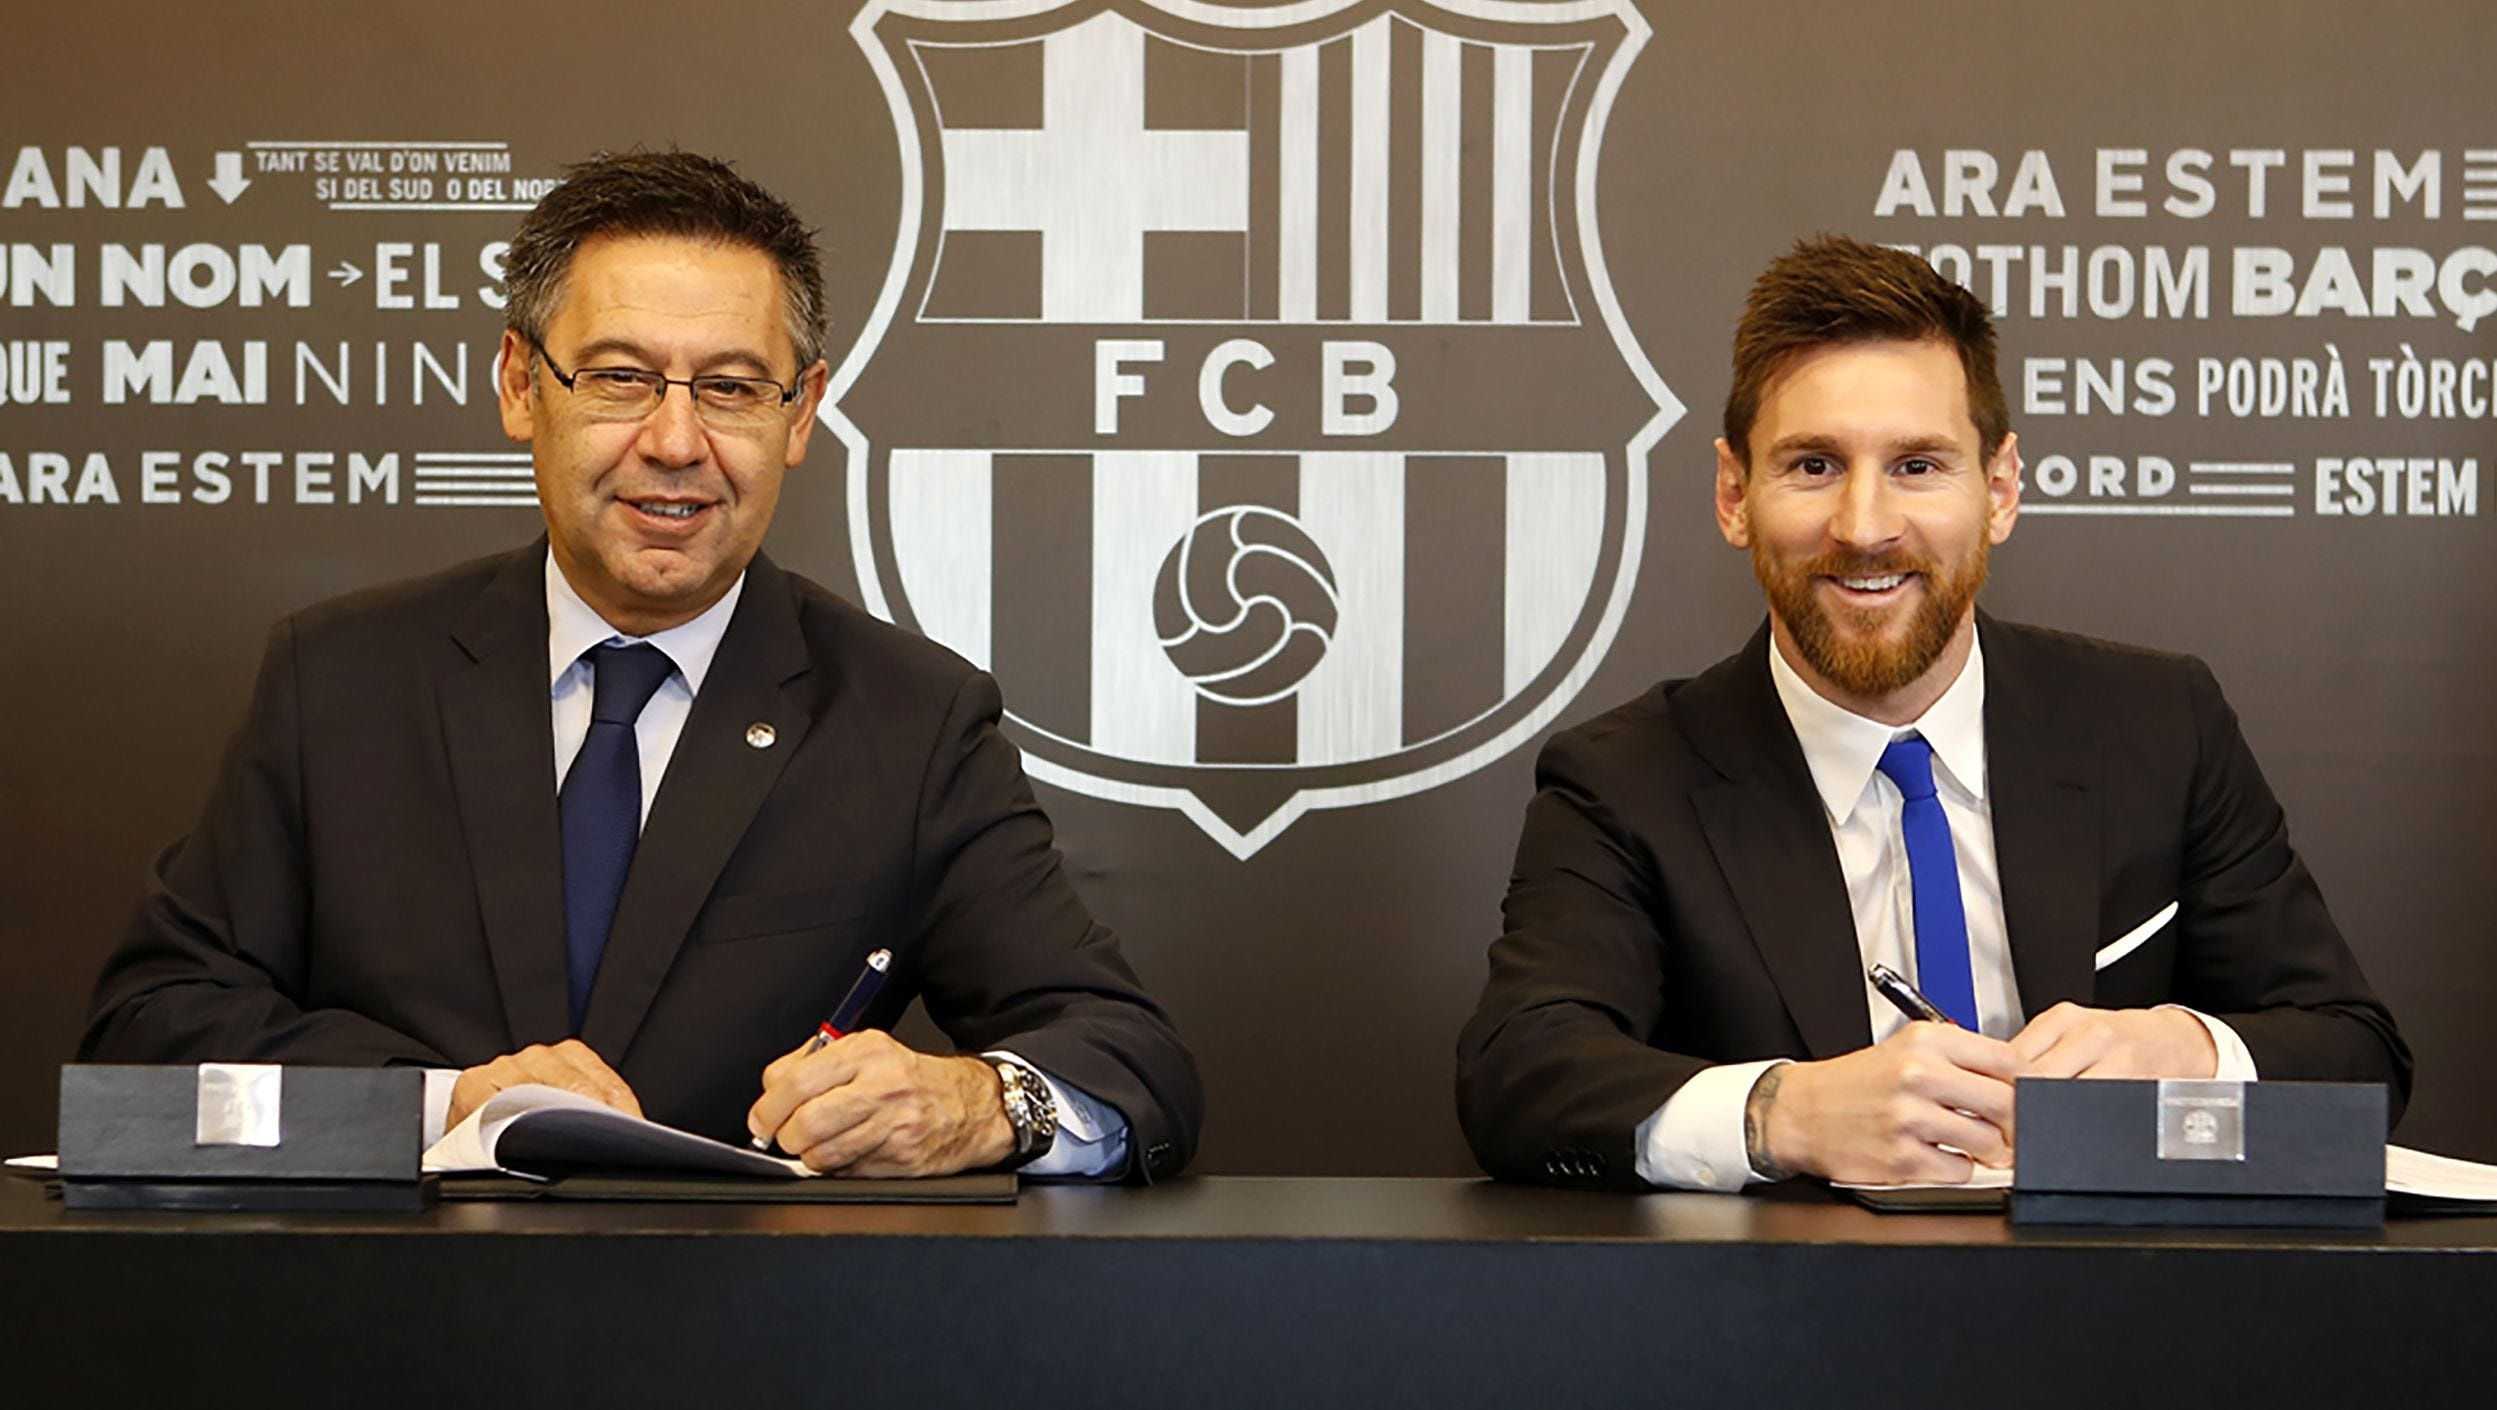 Messi roi Barca anh 4